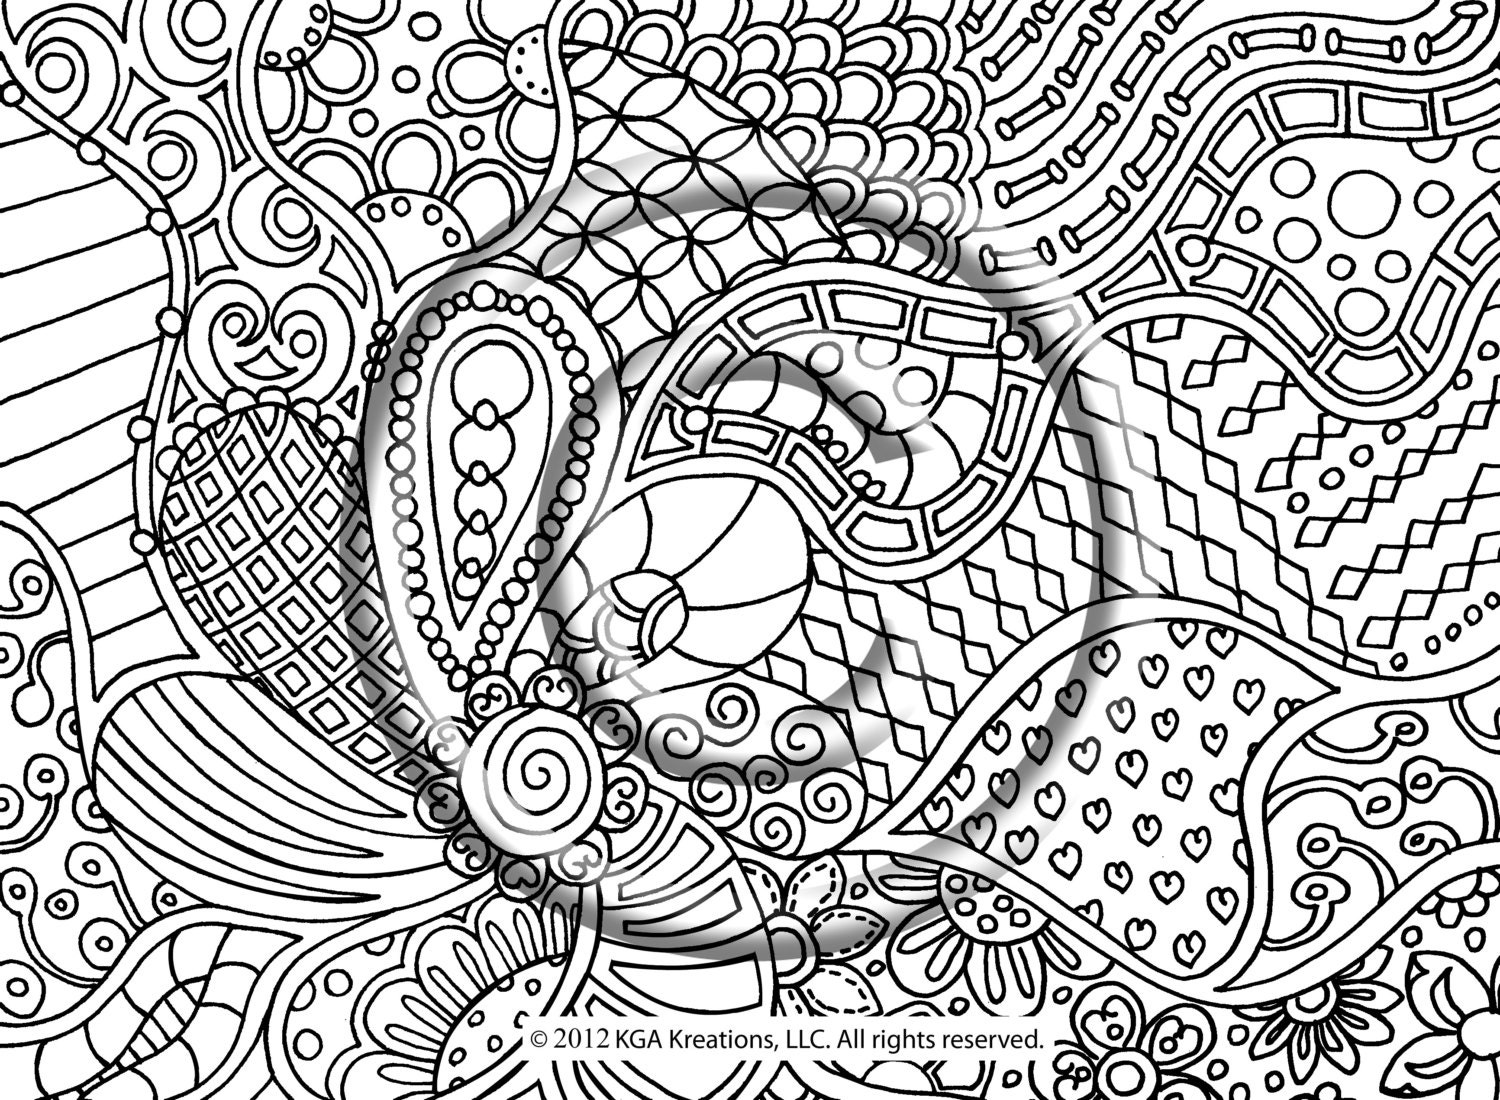 Instant PDF Download Coloring Page Hand Drawn Zentangle | Etsy